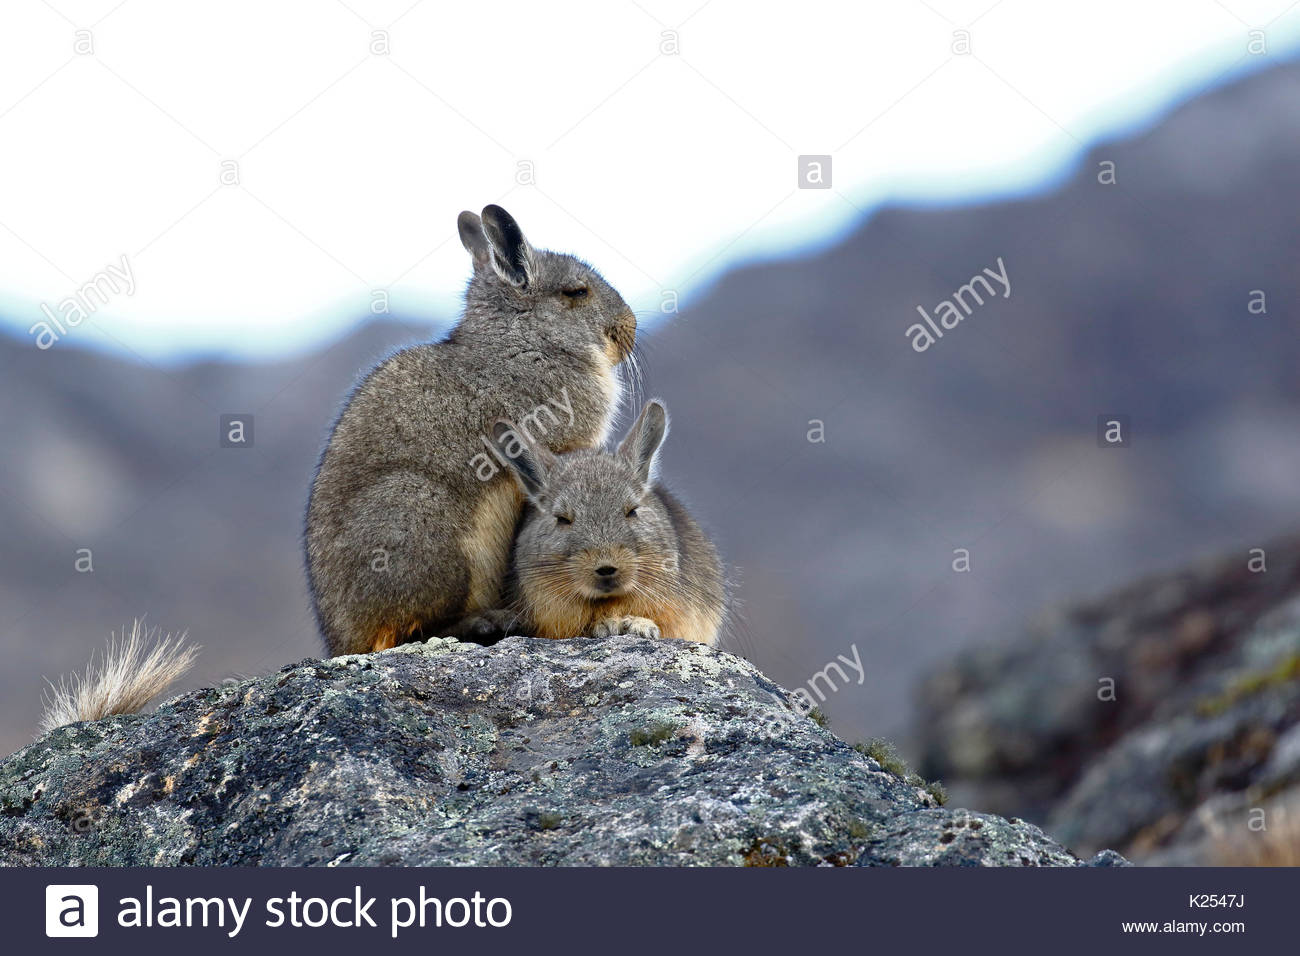 mountain viscacha stock photos mountain viscacha stock images alamy. Black Bedroom Furniture Sets. Home Design Ideas